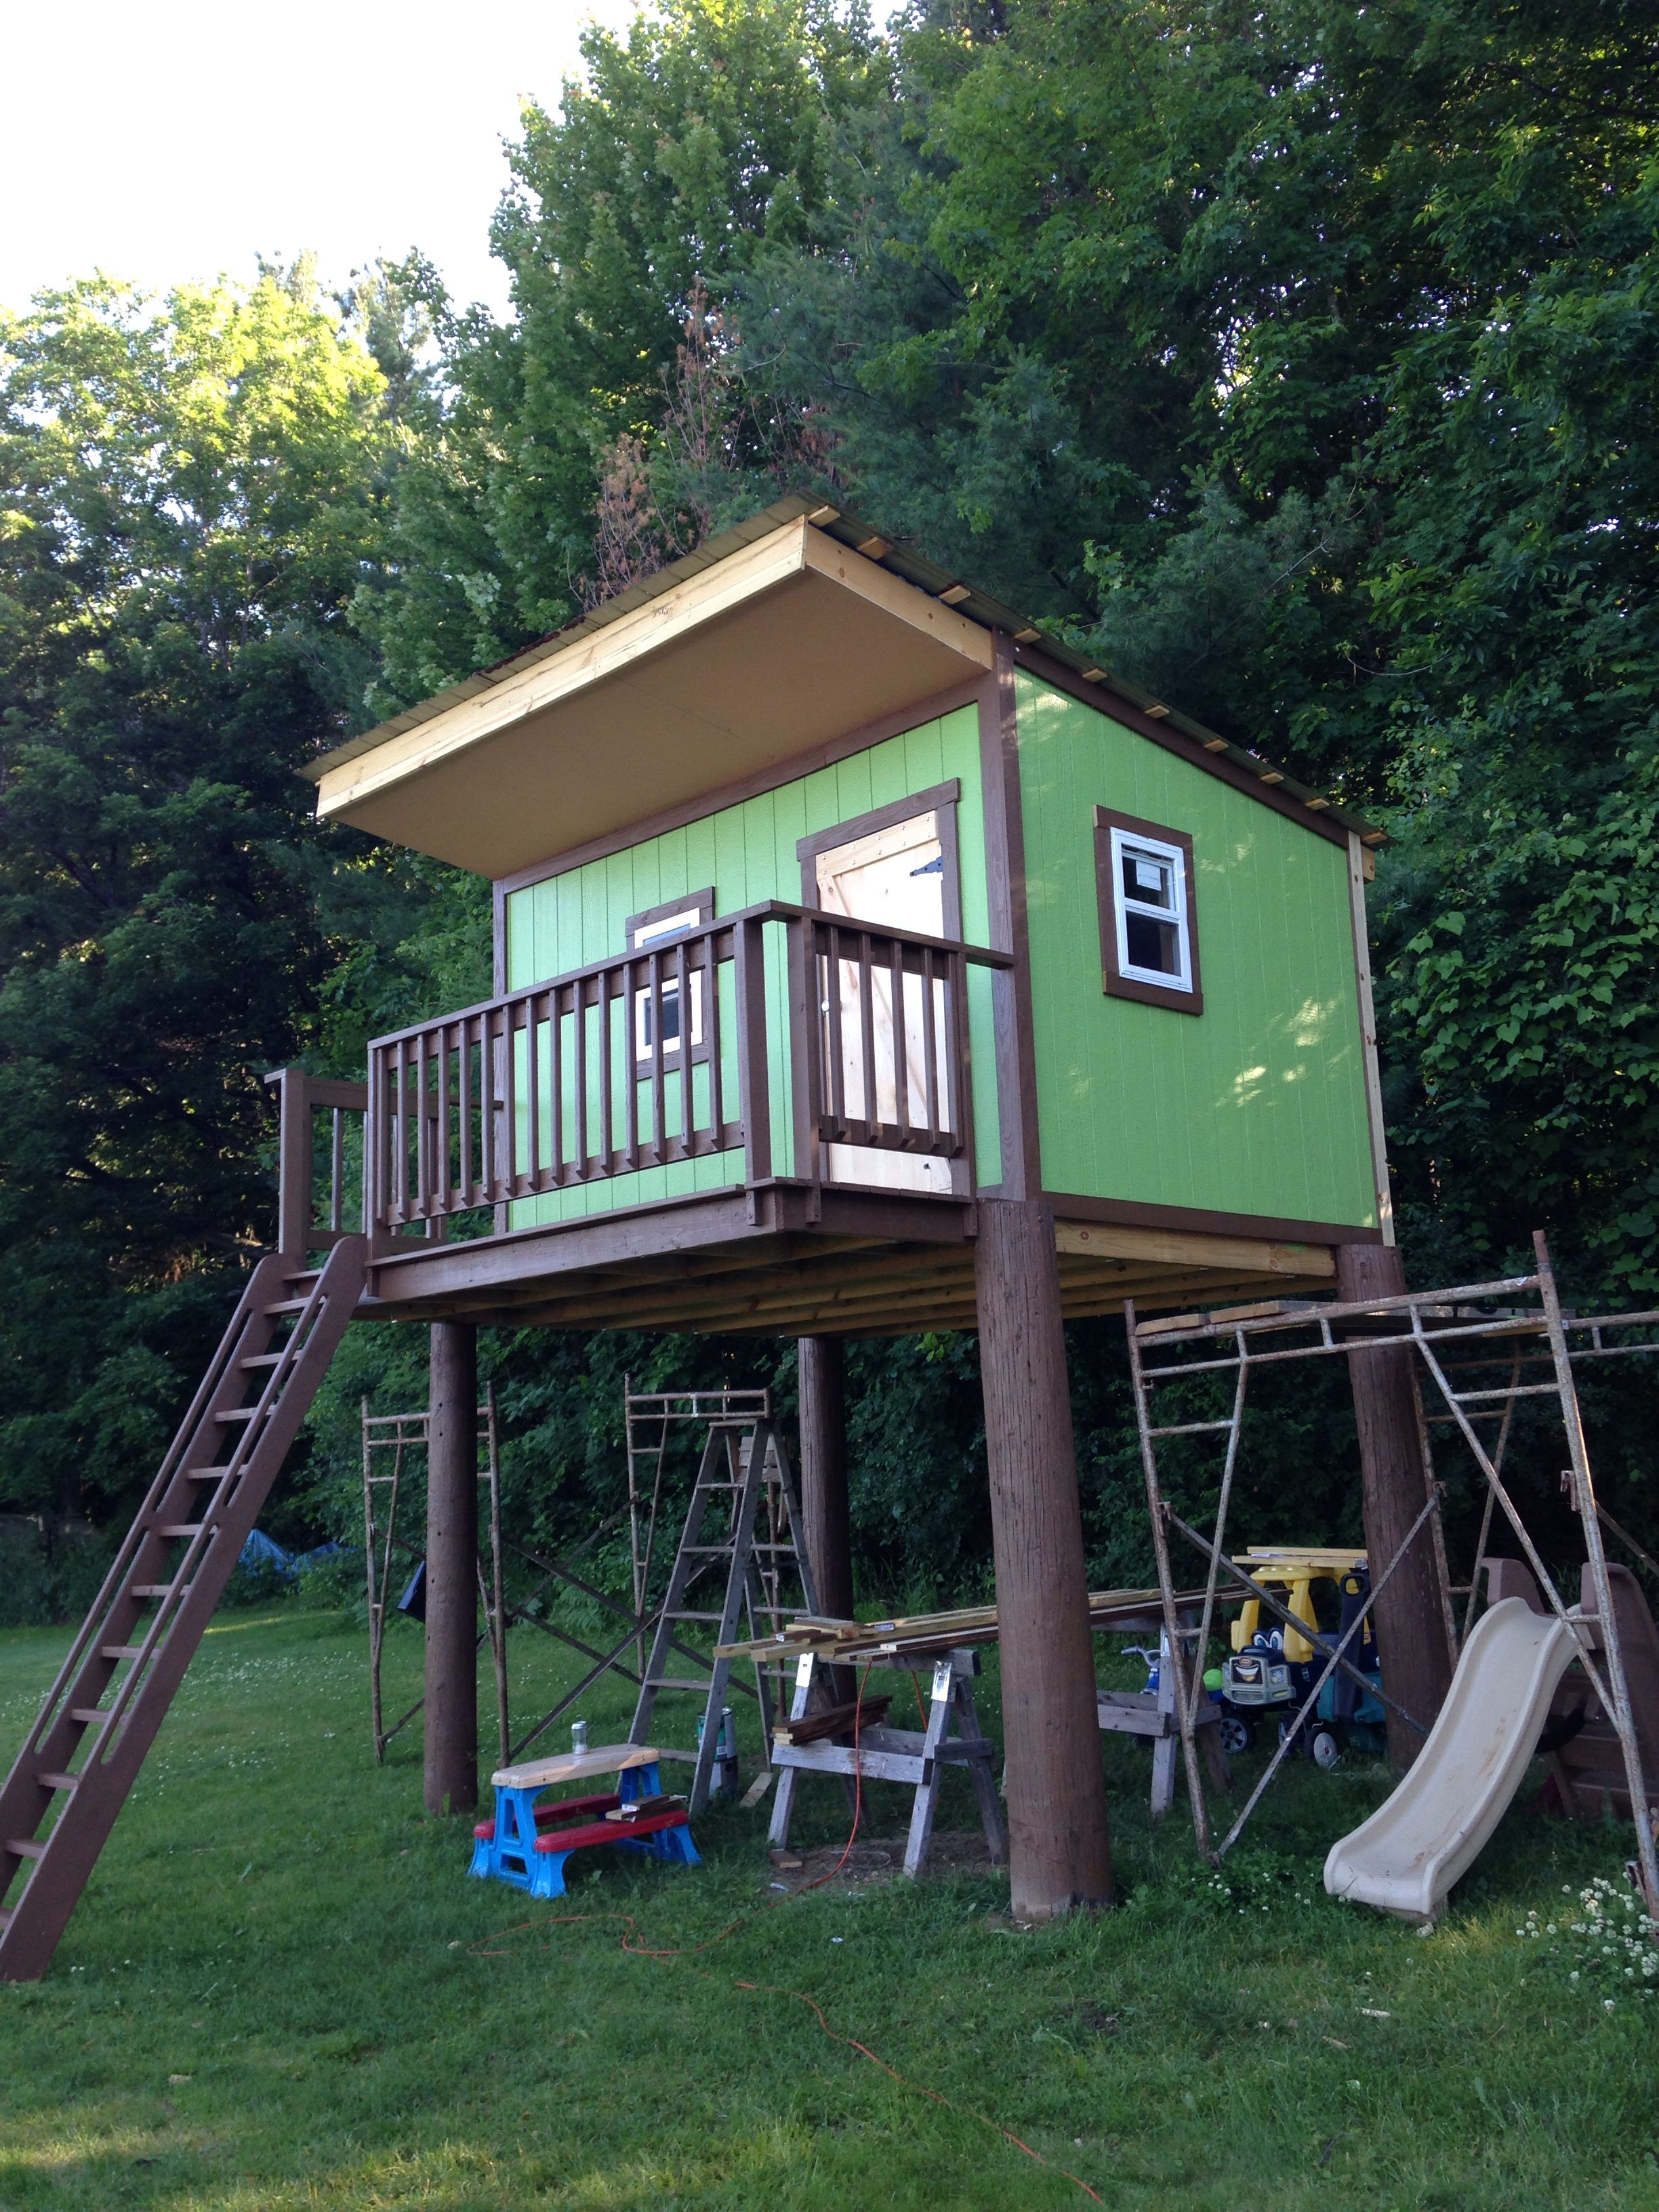 Tree House For My Son Built Standing 8 From Ground To